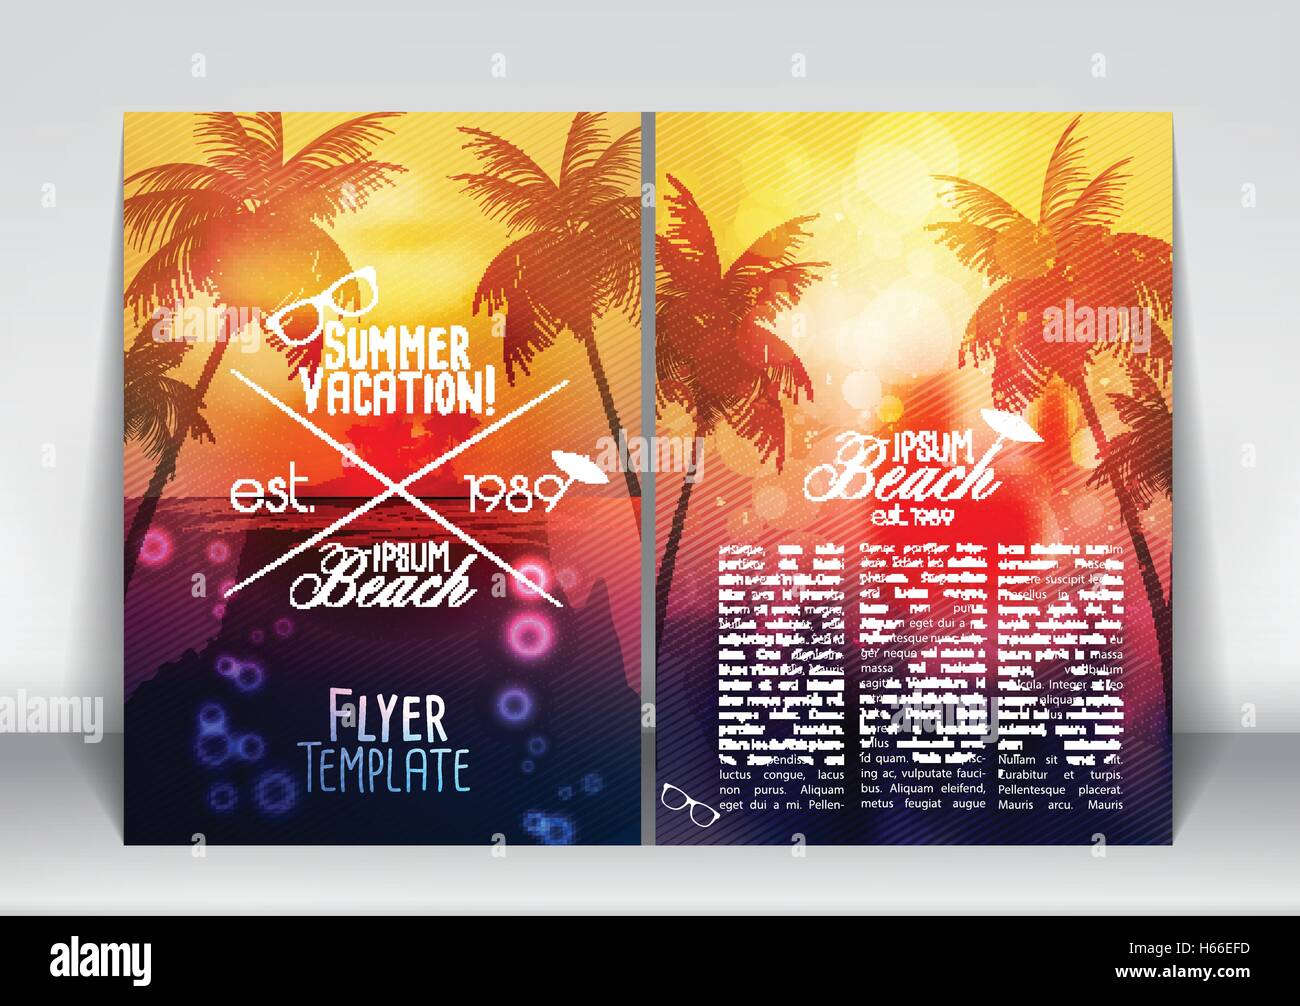 summer vacation flyer design with palm trees and paradise island